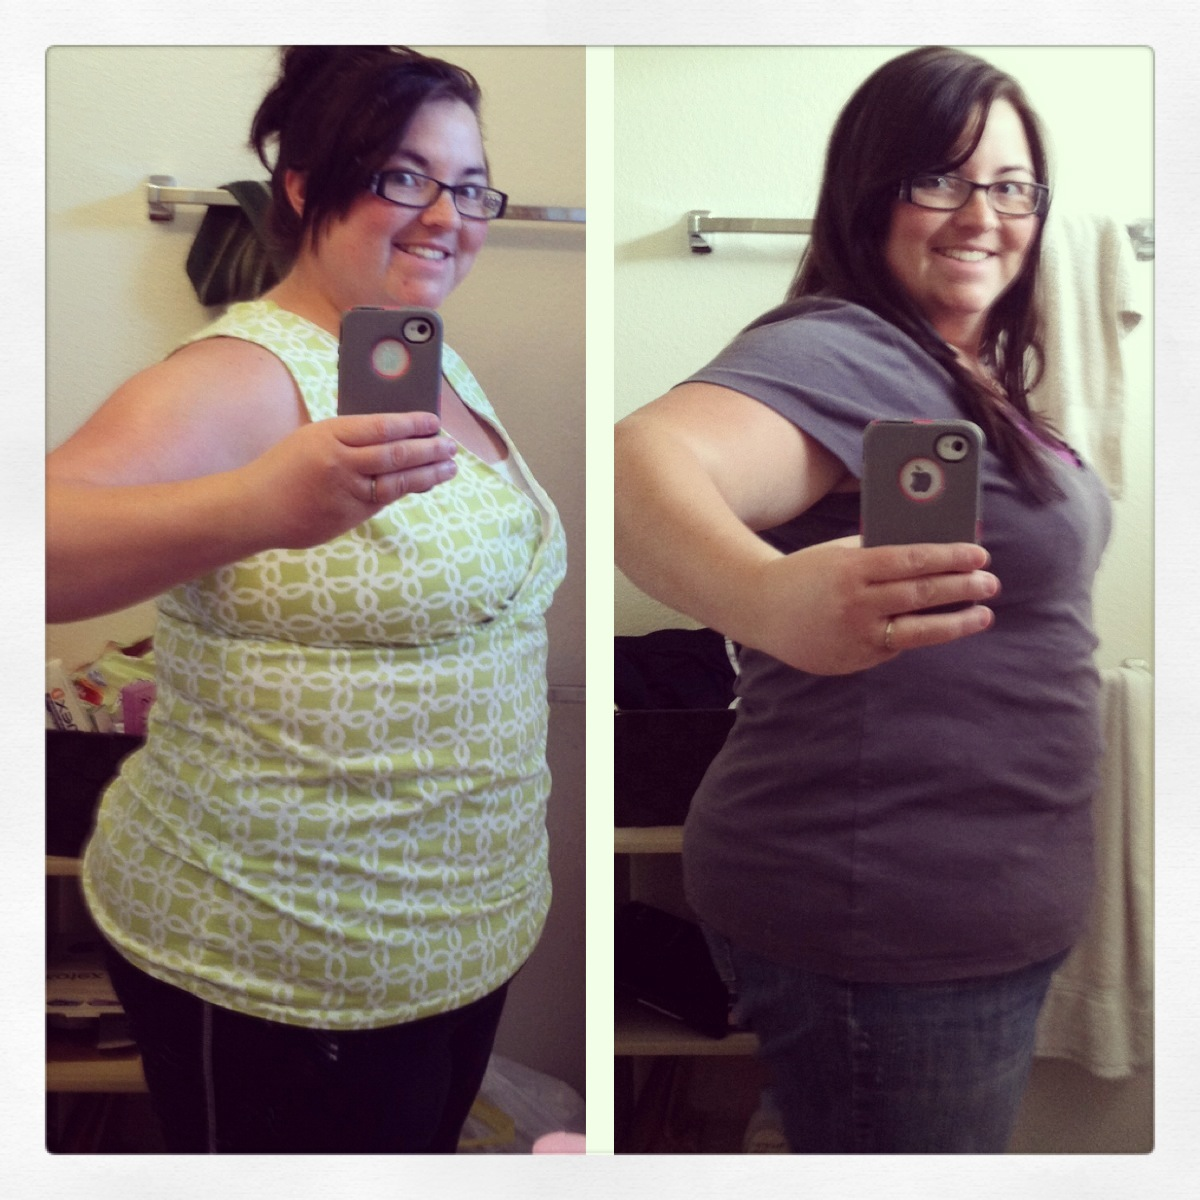 54 year old woman lose weight